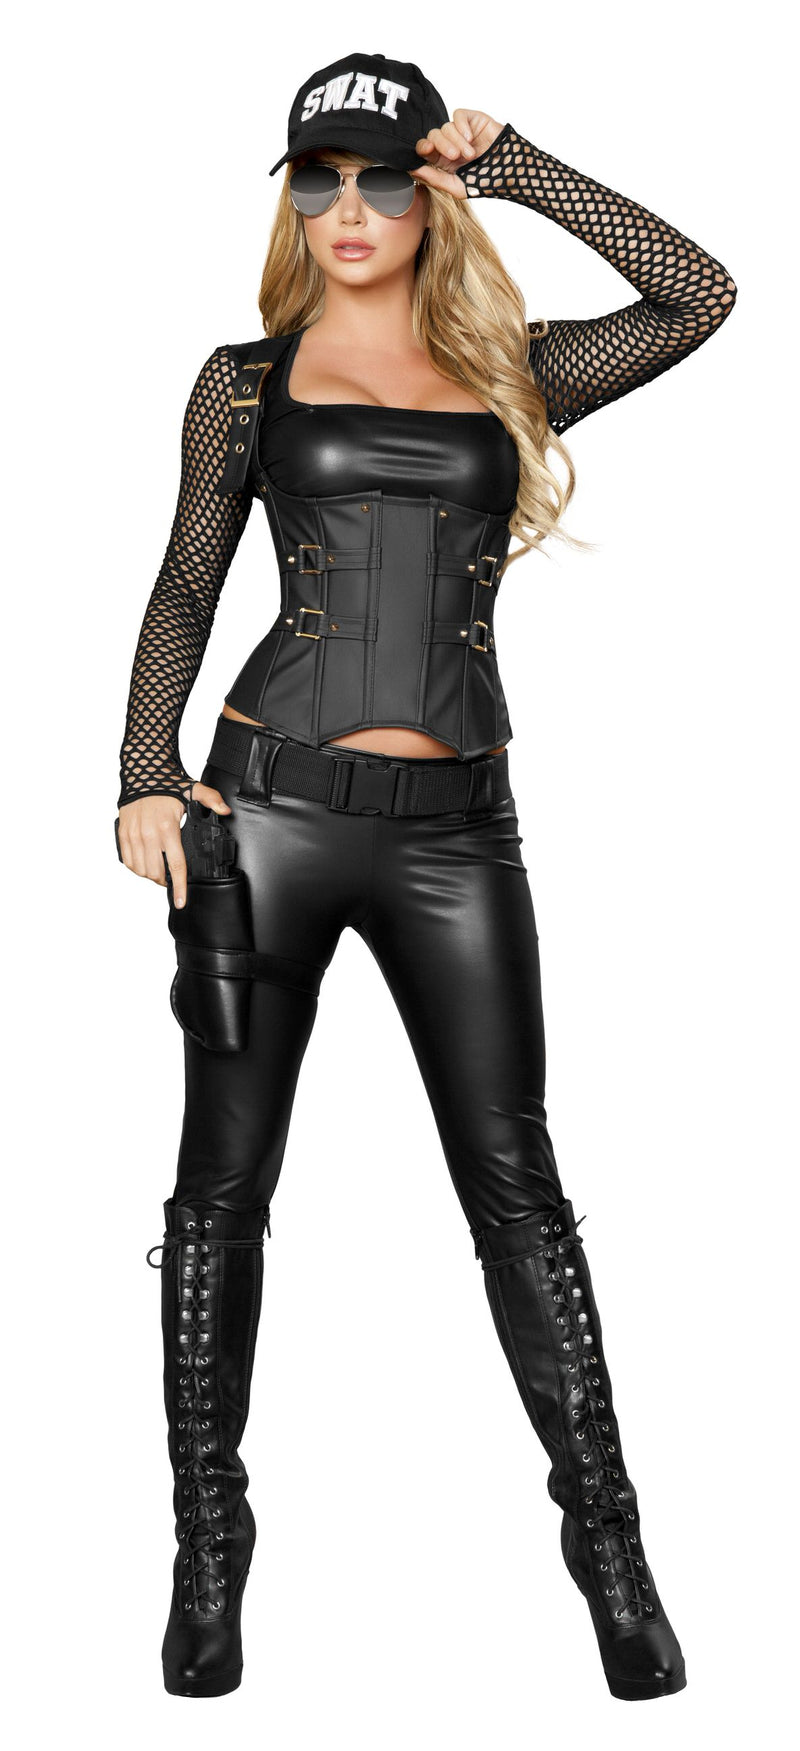 5-Piece-Sexy-SWAT-Officer-Top-Cincher-&-Pants-w/-Accessories-Party-Costume